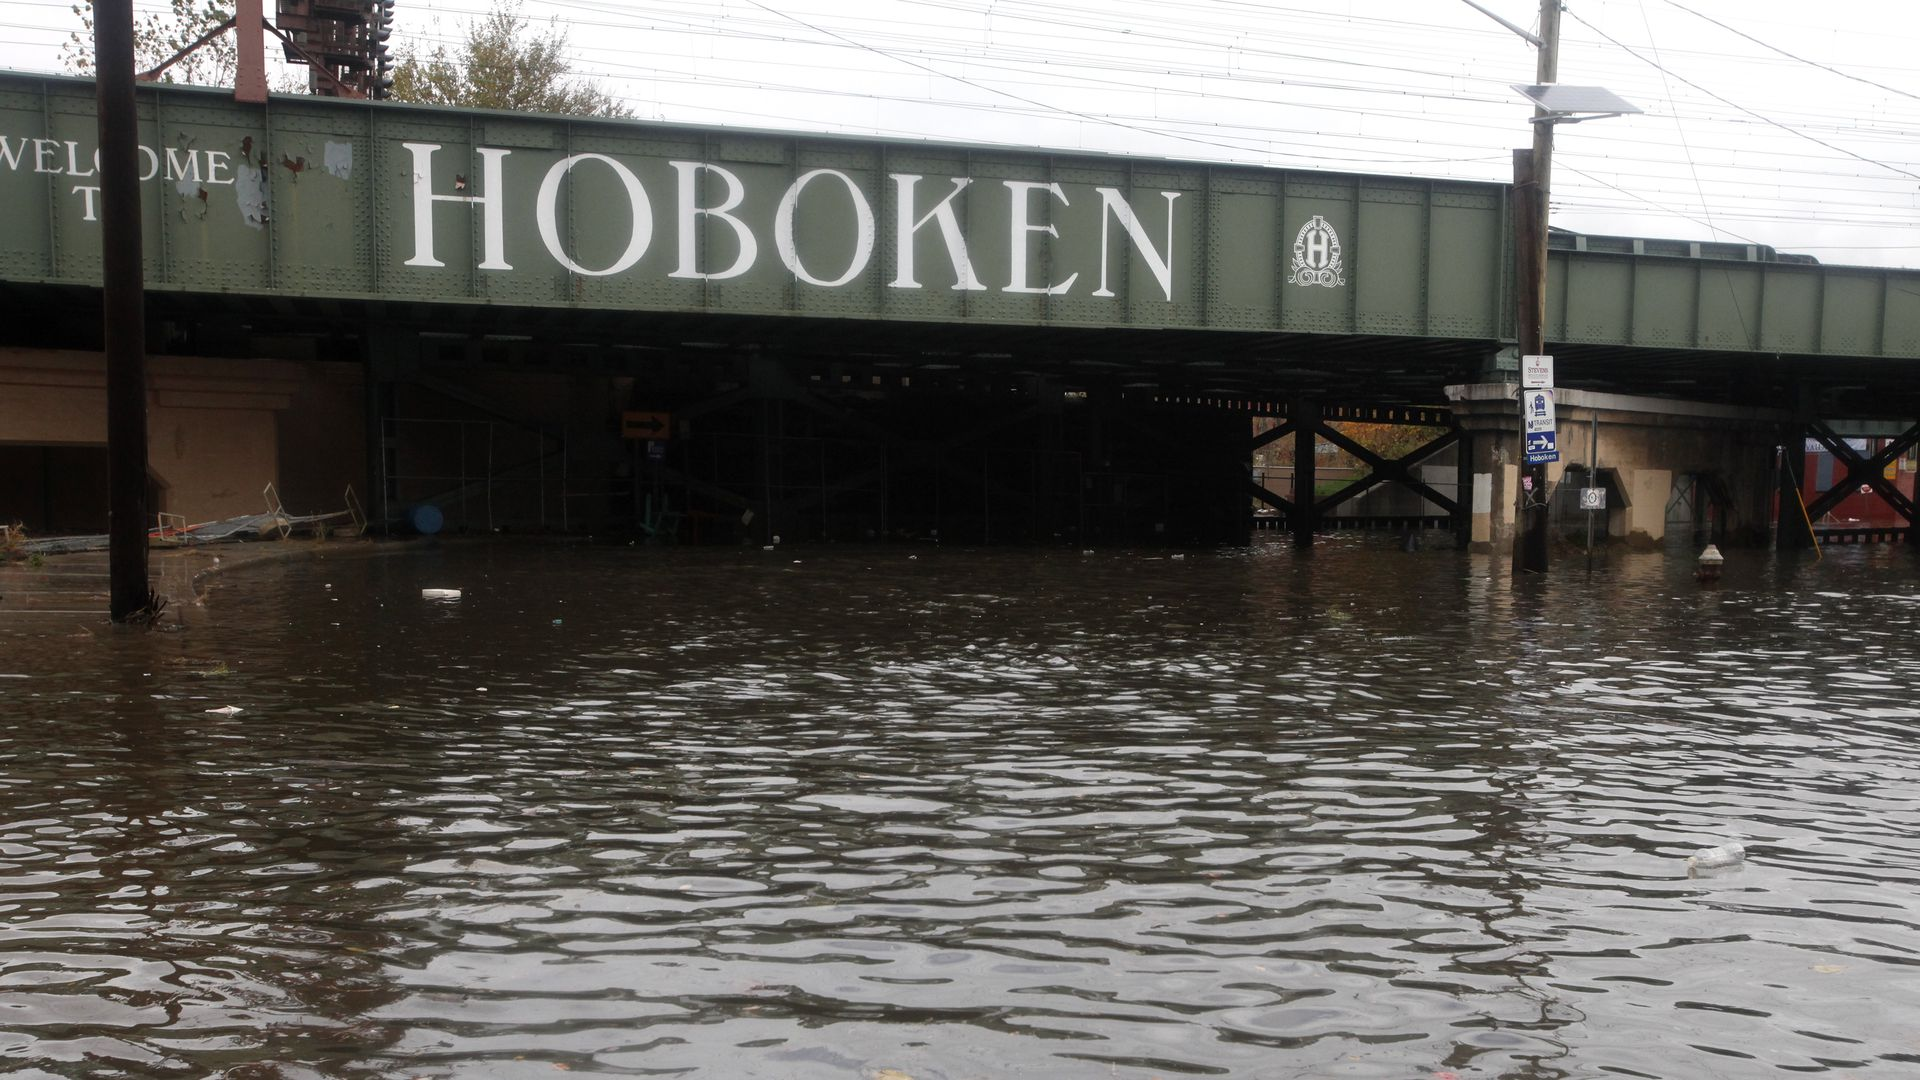 Hoboken flooding